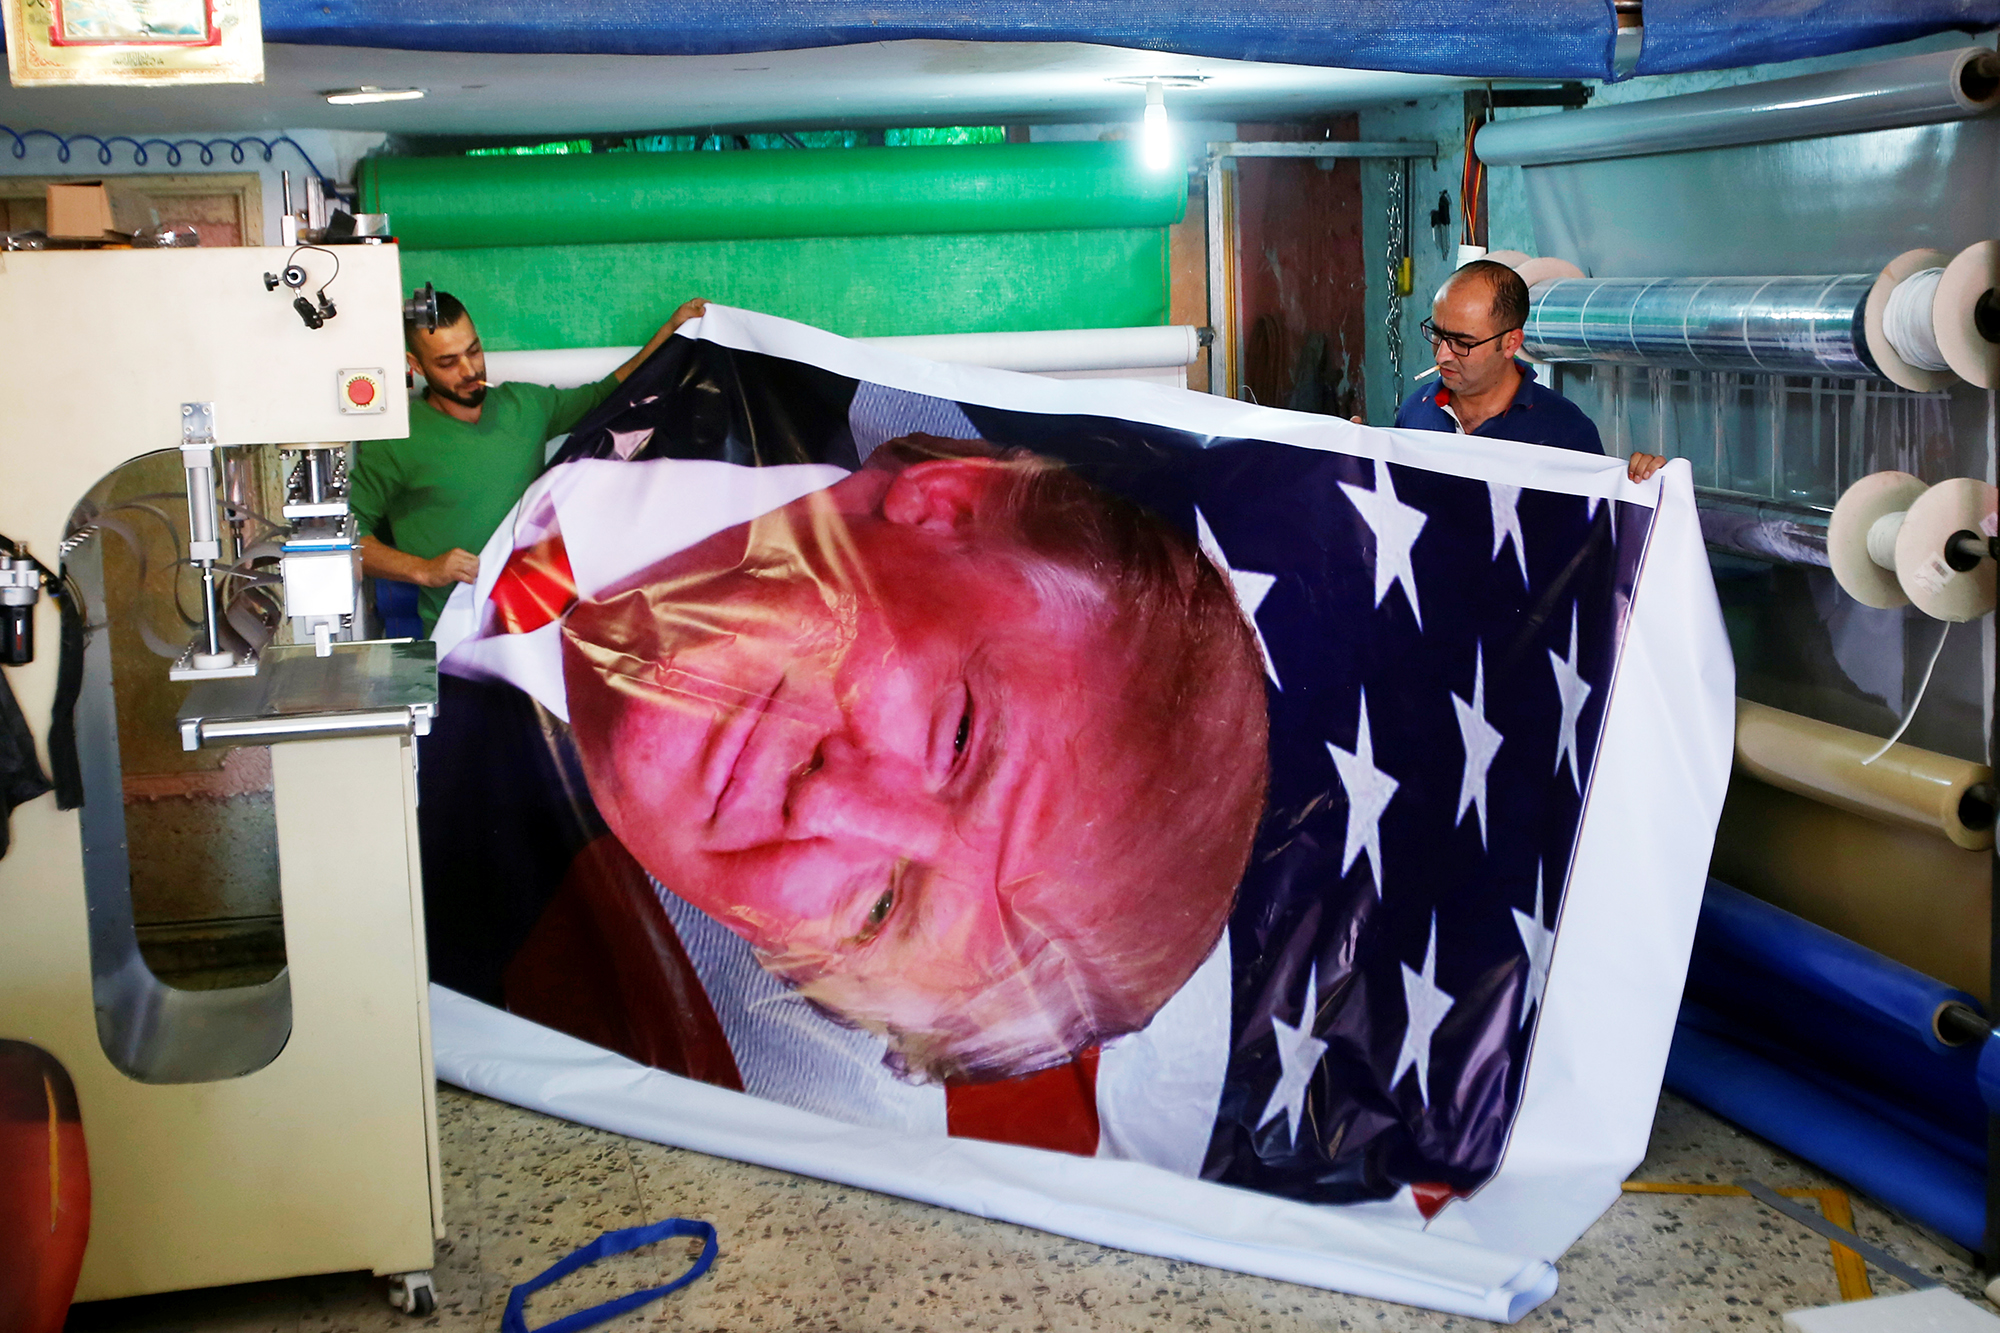 Palestinians print a poster depicting Donald Trump in preparation for his planned visit, in the West Bank town of Bethlehem, on May 21, 2017.